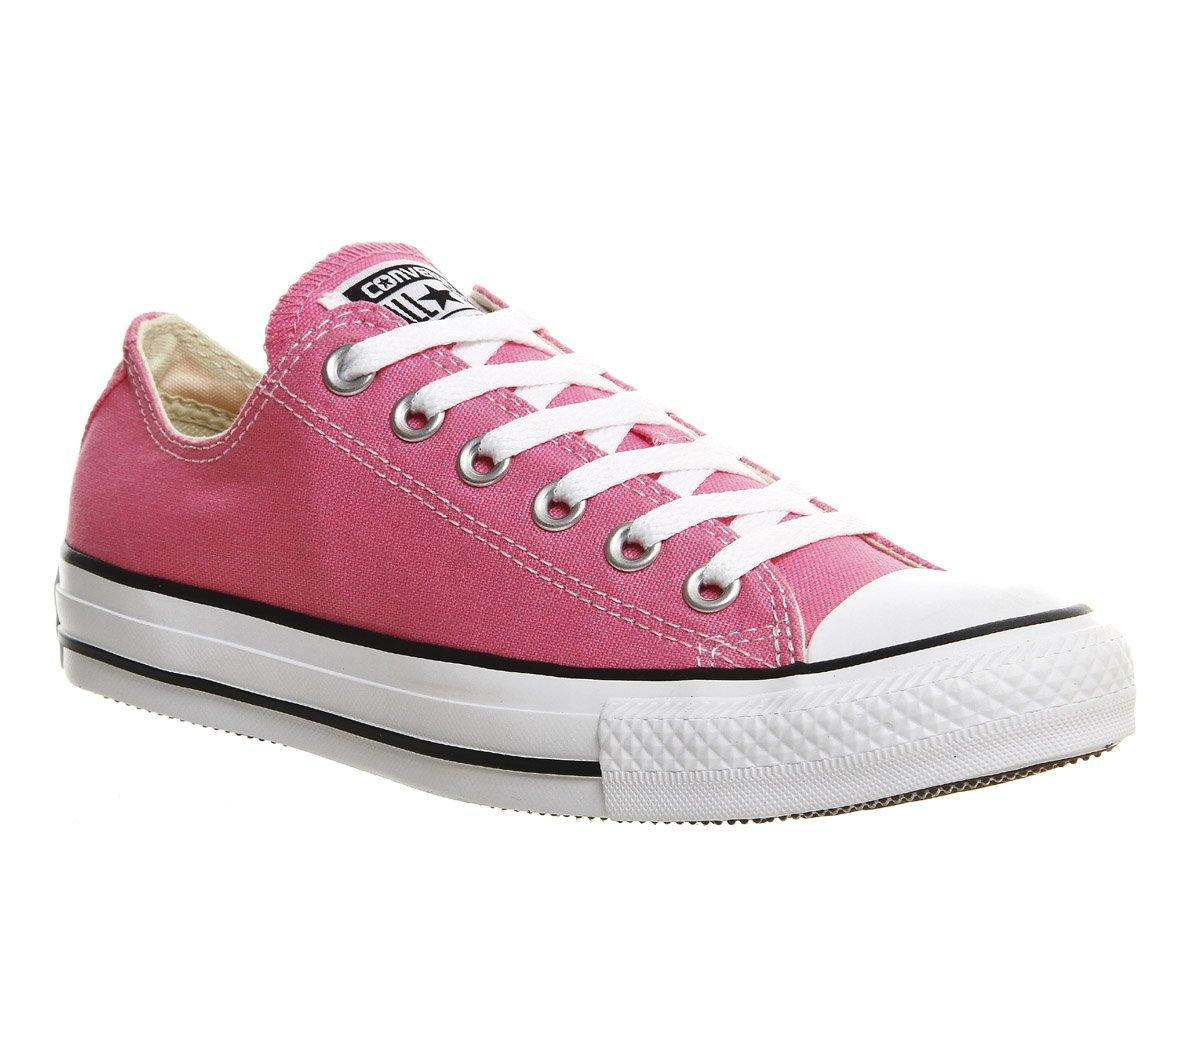 Schuh Okay Online Shop Secret Online Office Outlet Is Selling Exclusive Last Pairs And Ex